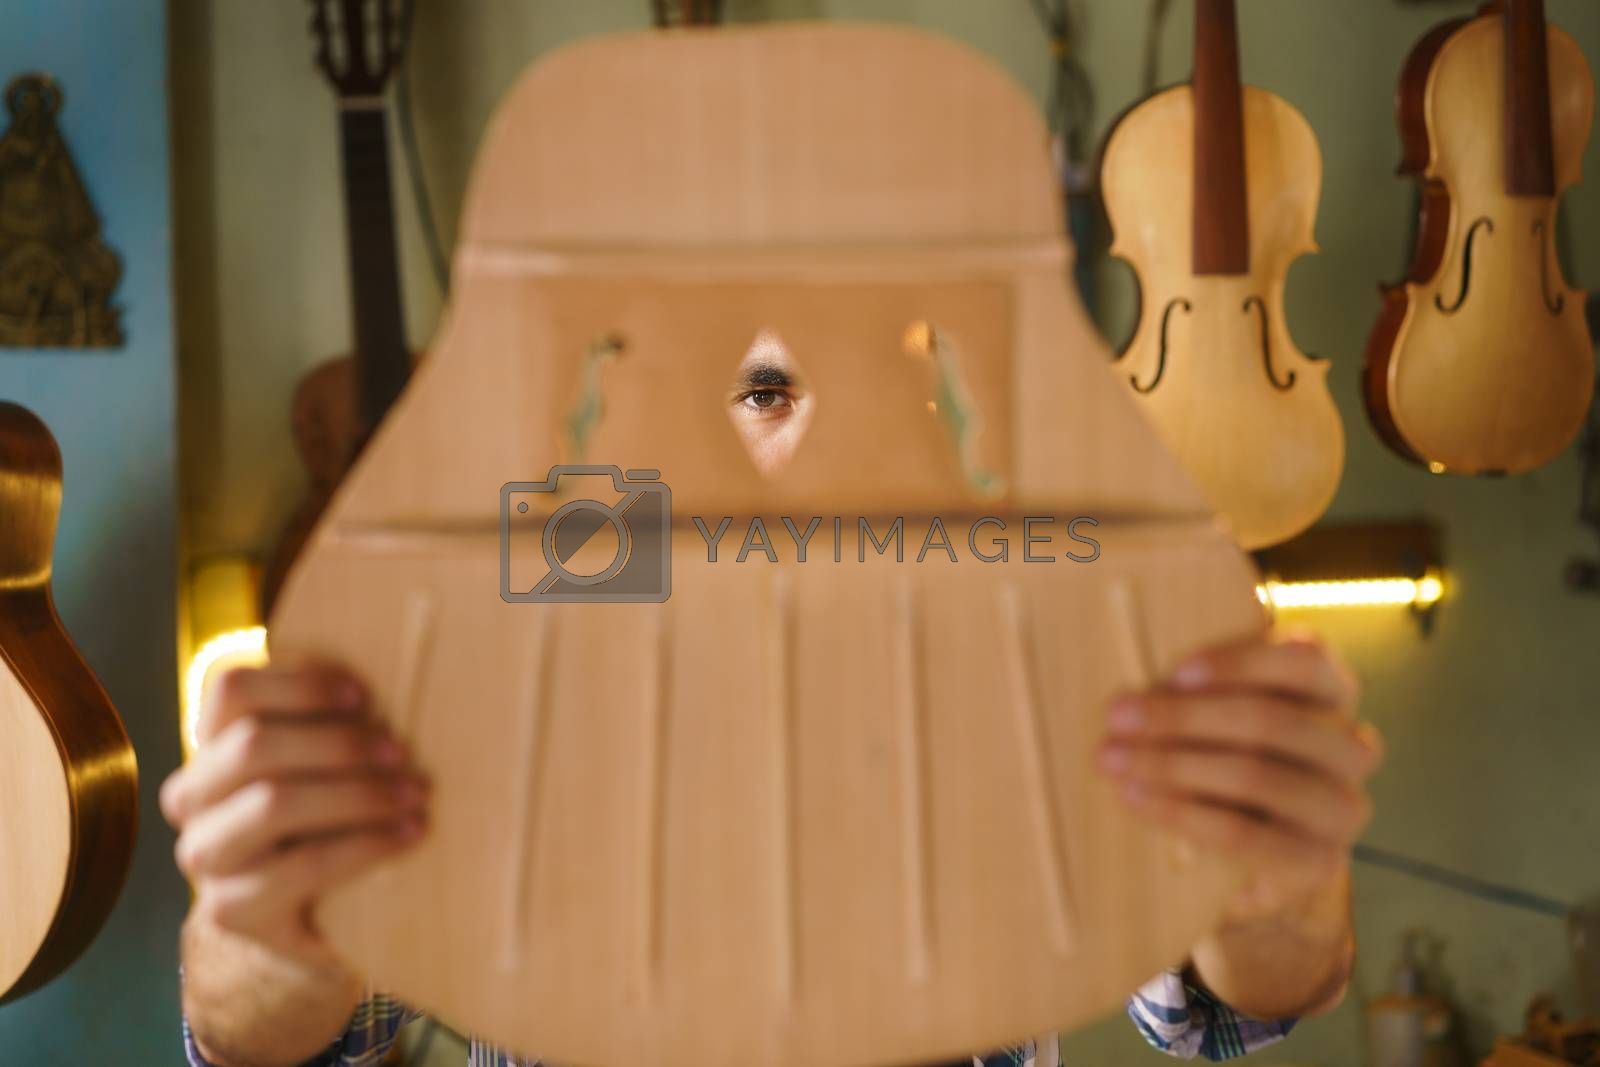 Lute maker shop and acoustic music instruments: young adult artisan carving and chiseling the body of a classic guitar. He is examining the design of the holes in the wooden body.